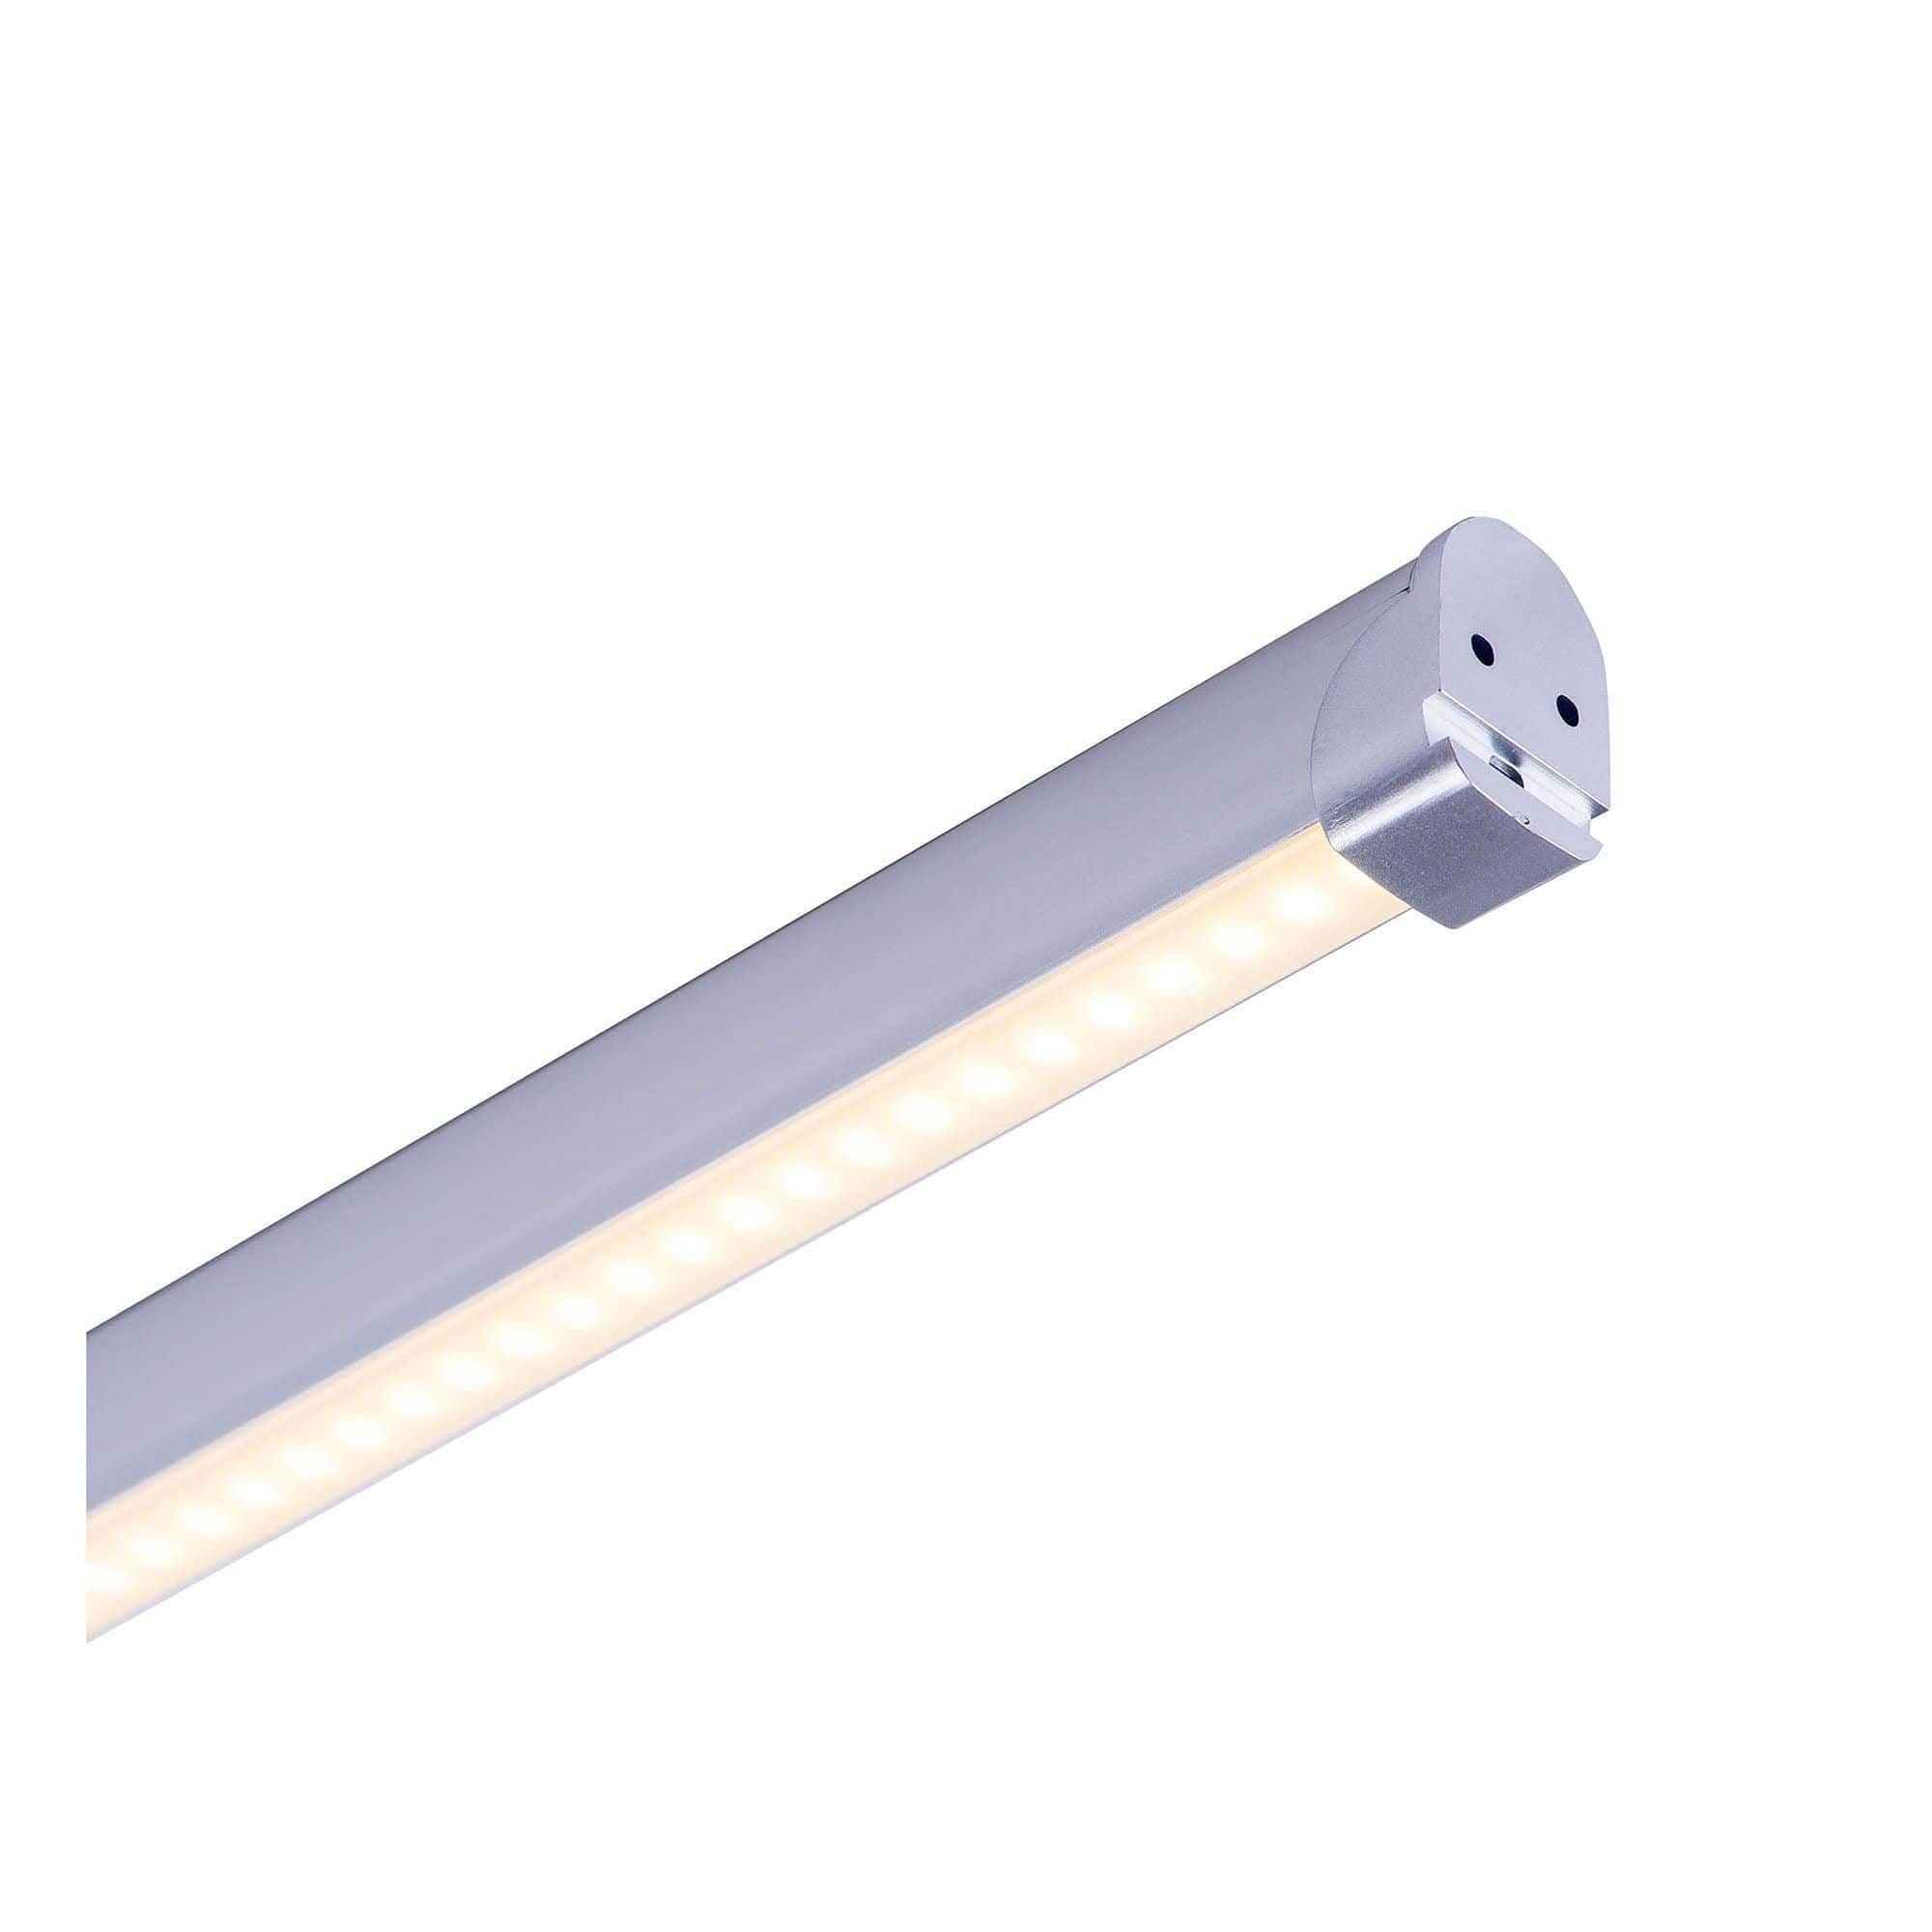 Wardrobe Profile - HV9692-1930 lighting shops lighting stores LED lights  lighting designer